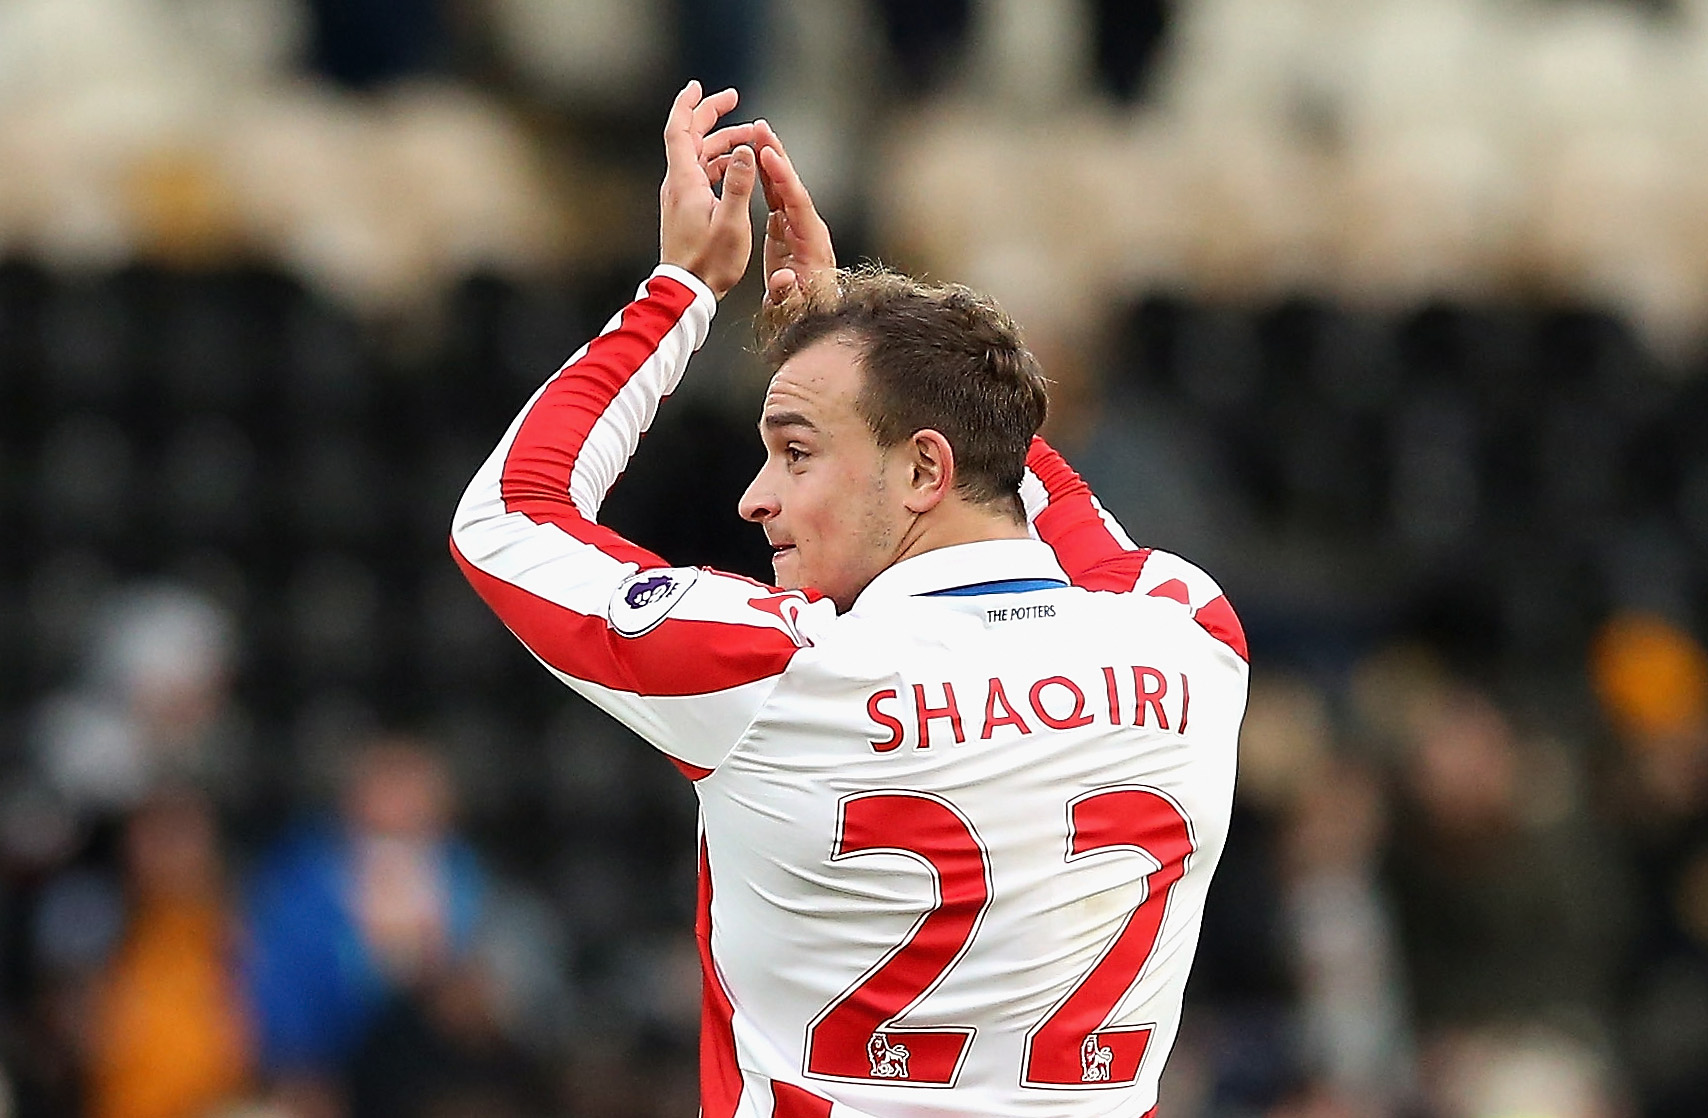 Stoke City ace Shaqiri issues come and get me plea to Liverpool and Champions League clubs